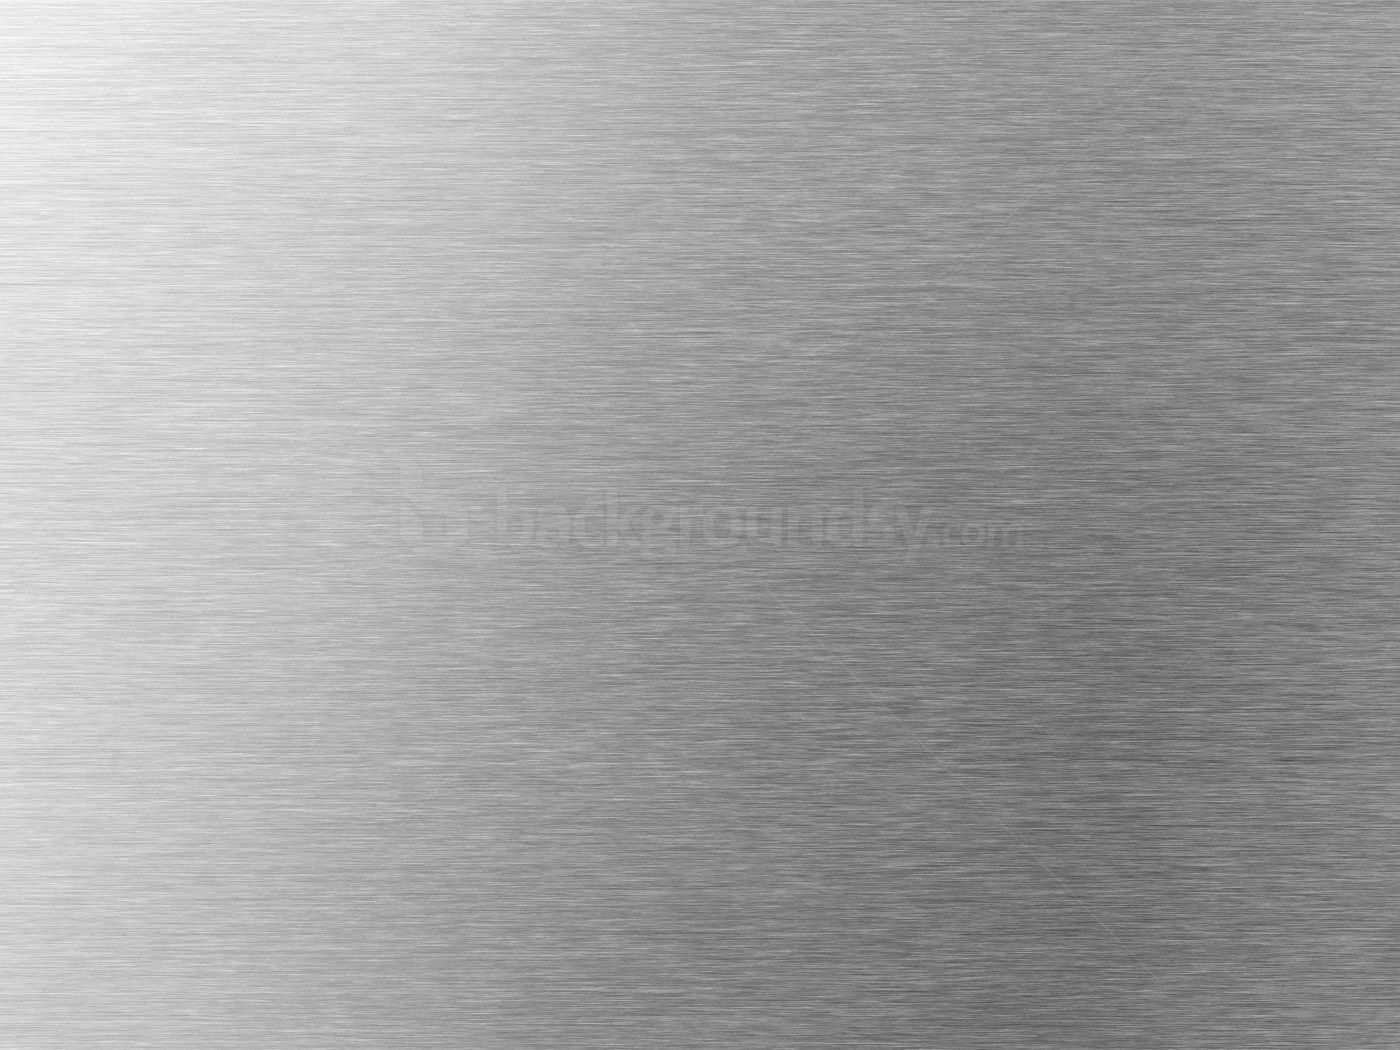 brushed stainless steel wallpaper - photo #5